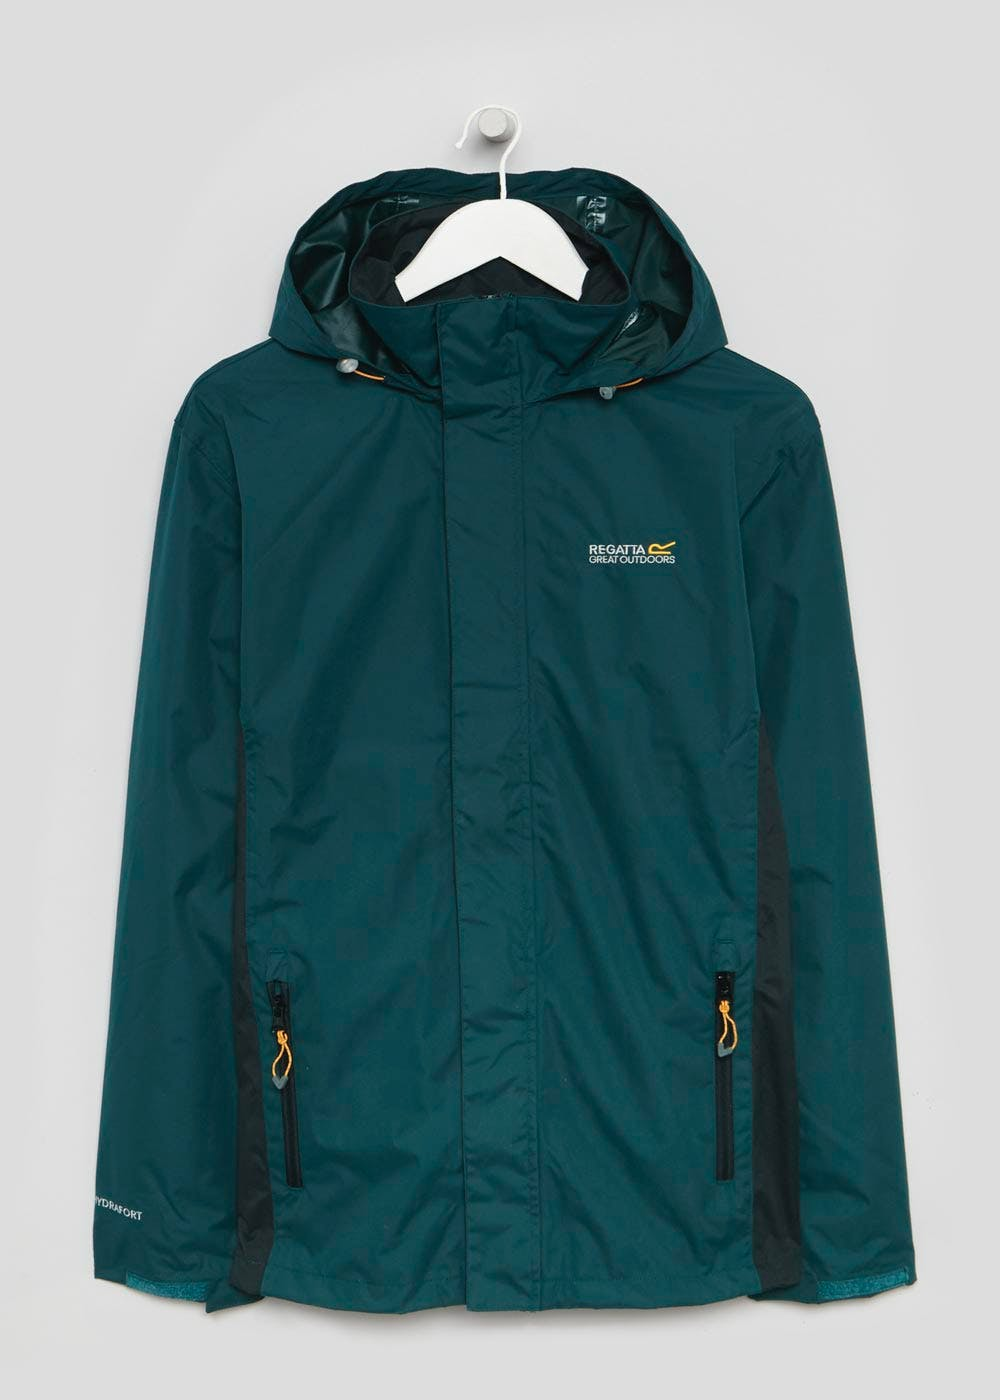 Regatta Waterproof Jacket – Green – Matalan